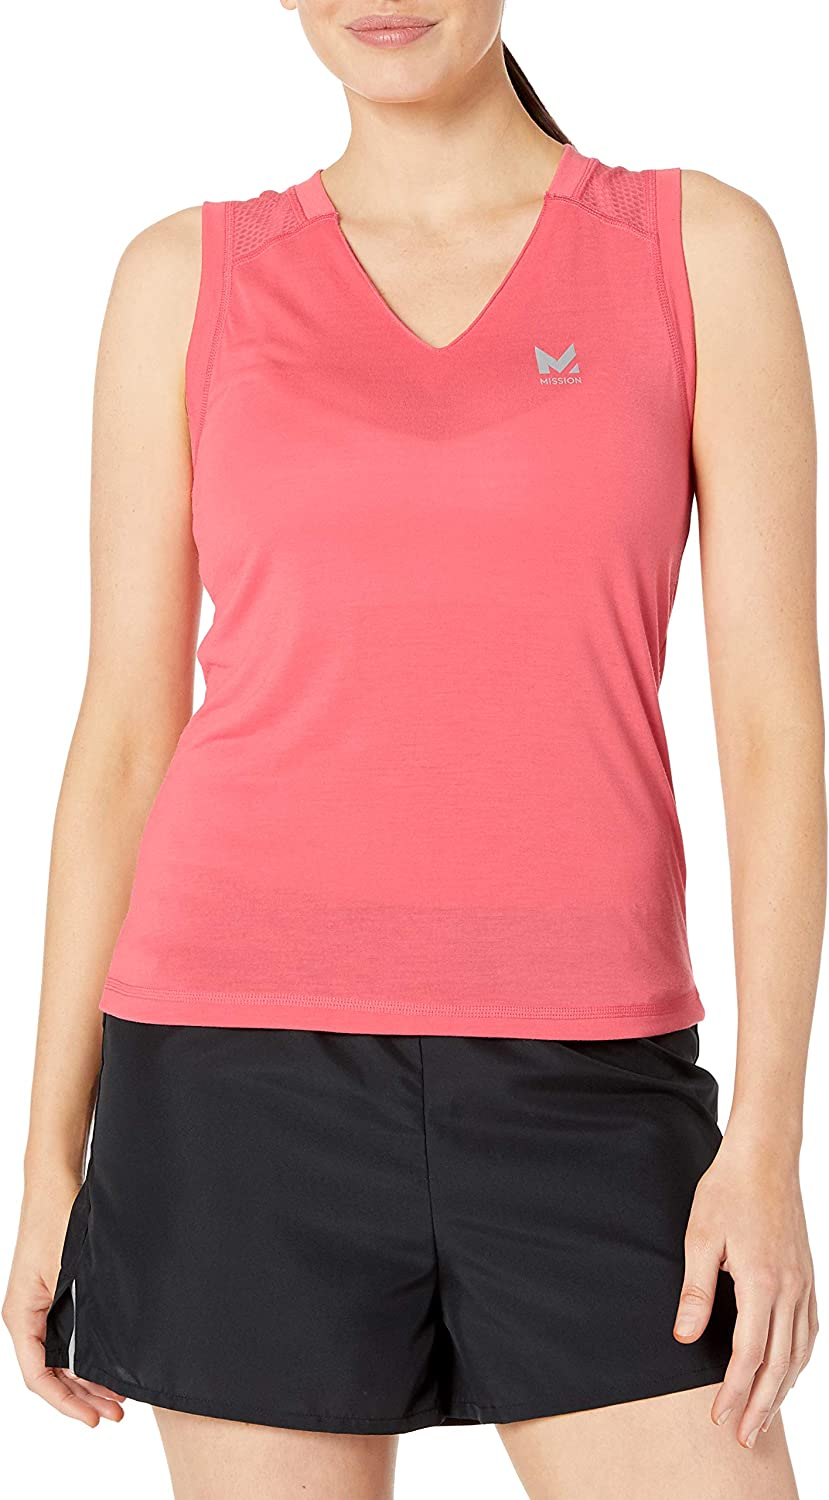 Mission Women's VaporActive Conductor Tank Top, Calypso Coral, Small